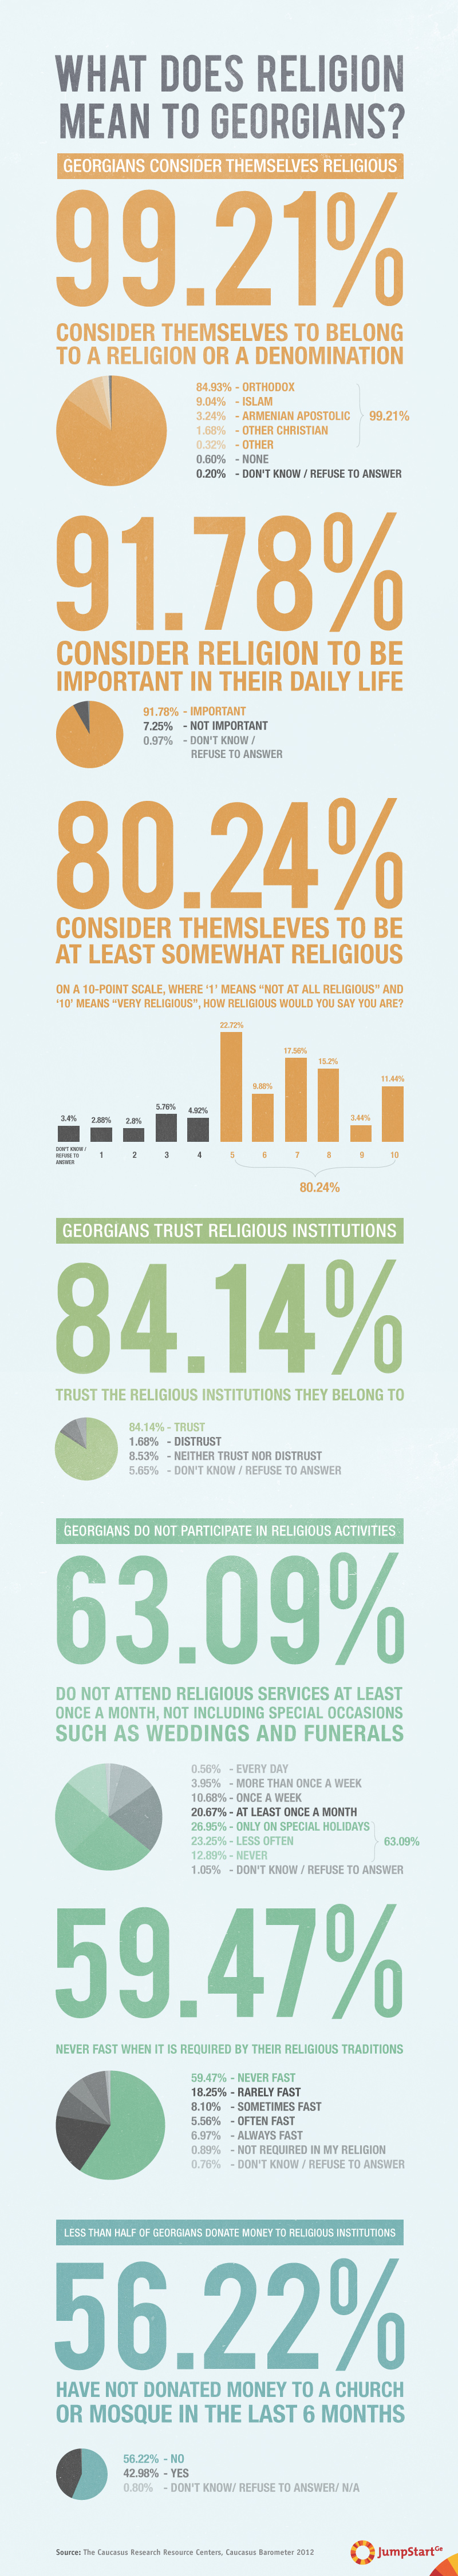 what-does-religion-mean-to-georgians_5183915cbbafd